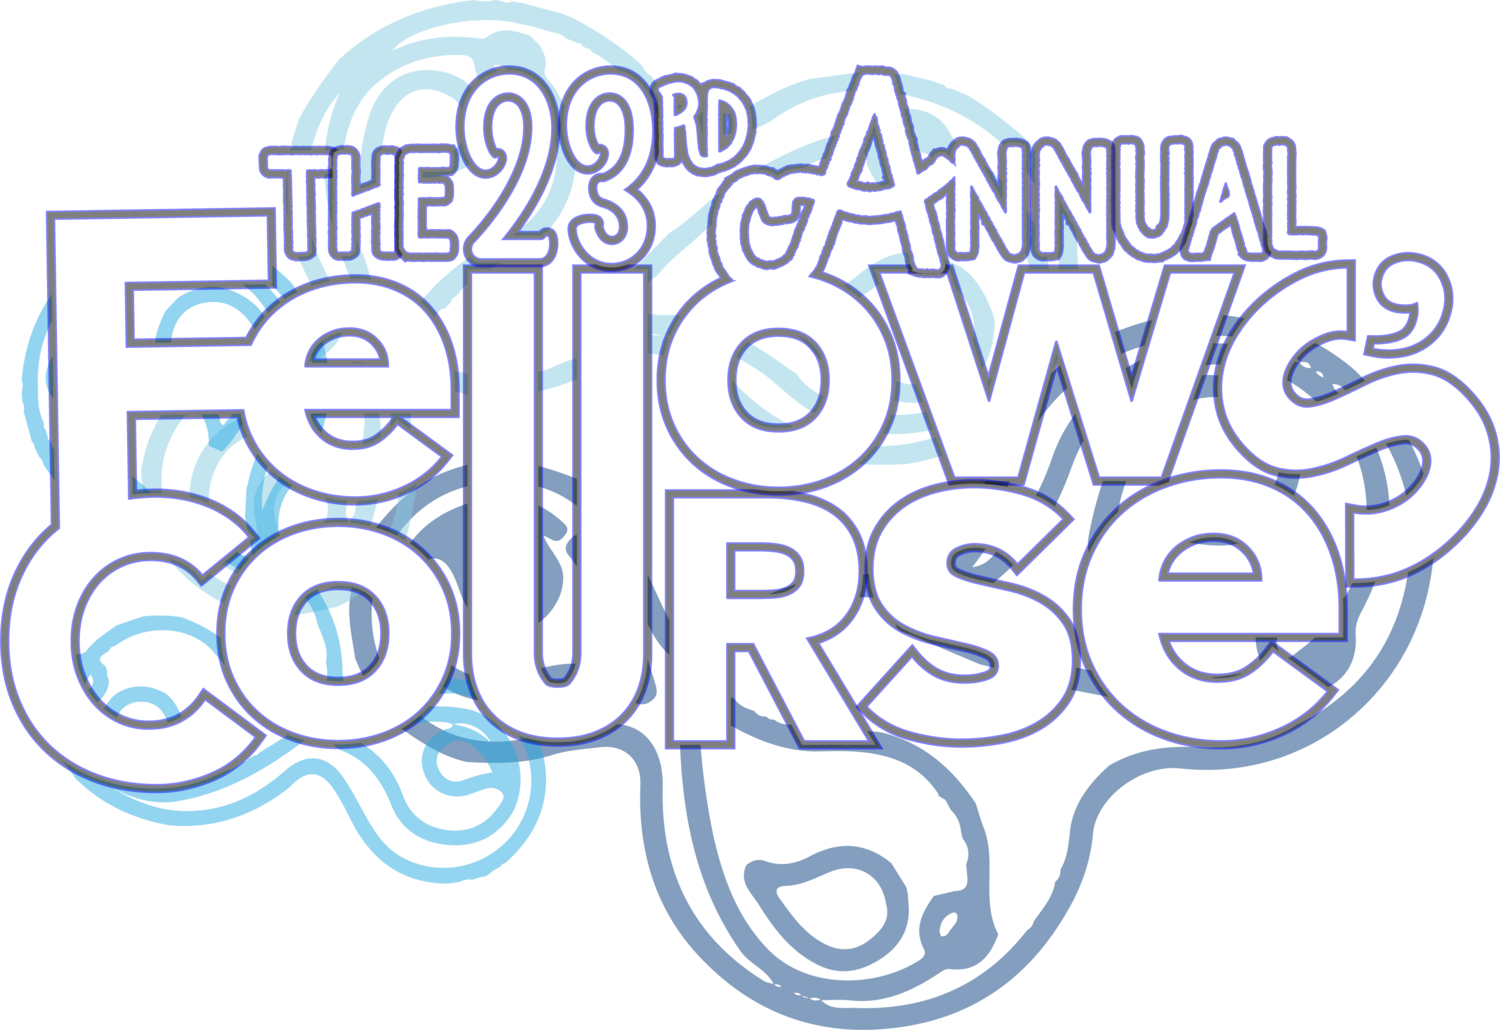 Fellows' Course